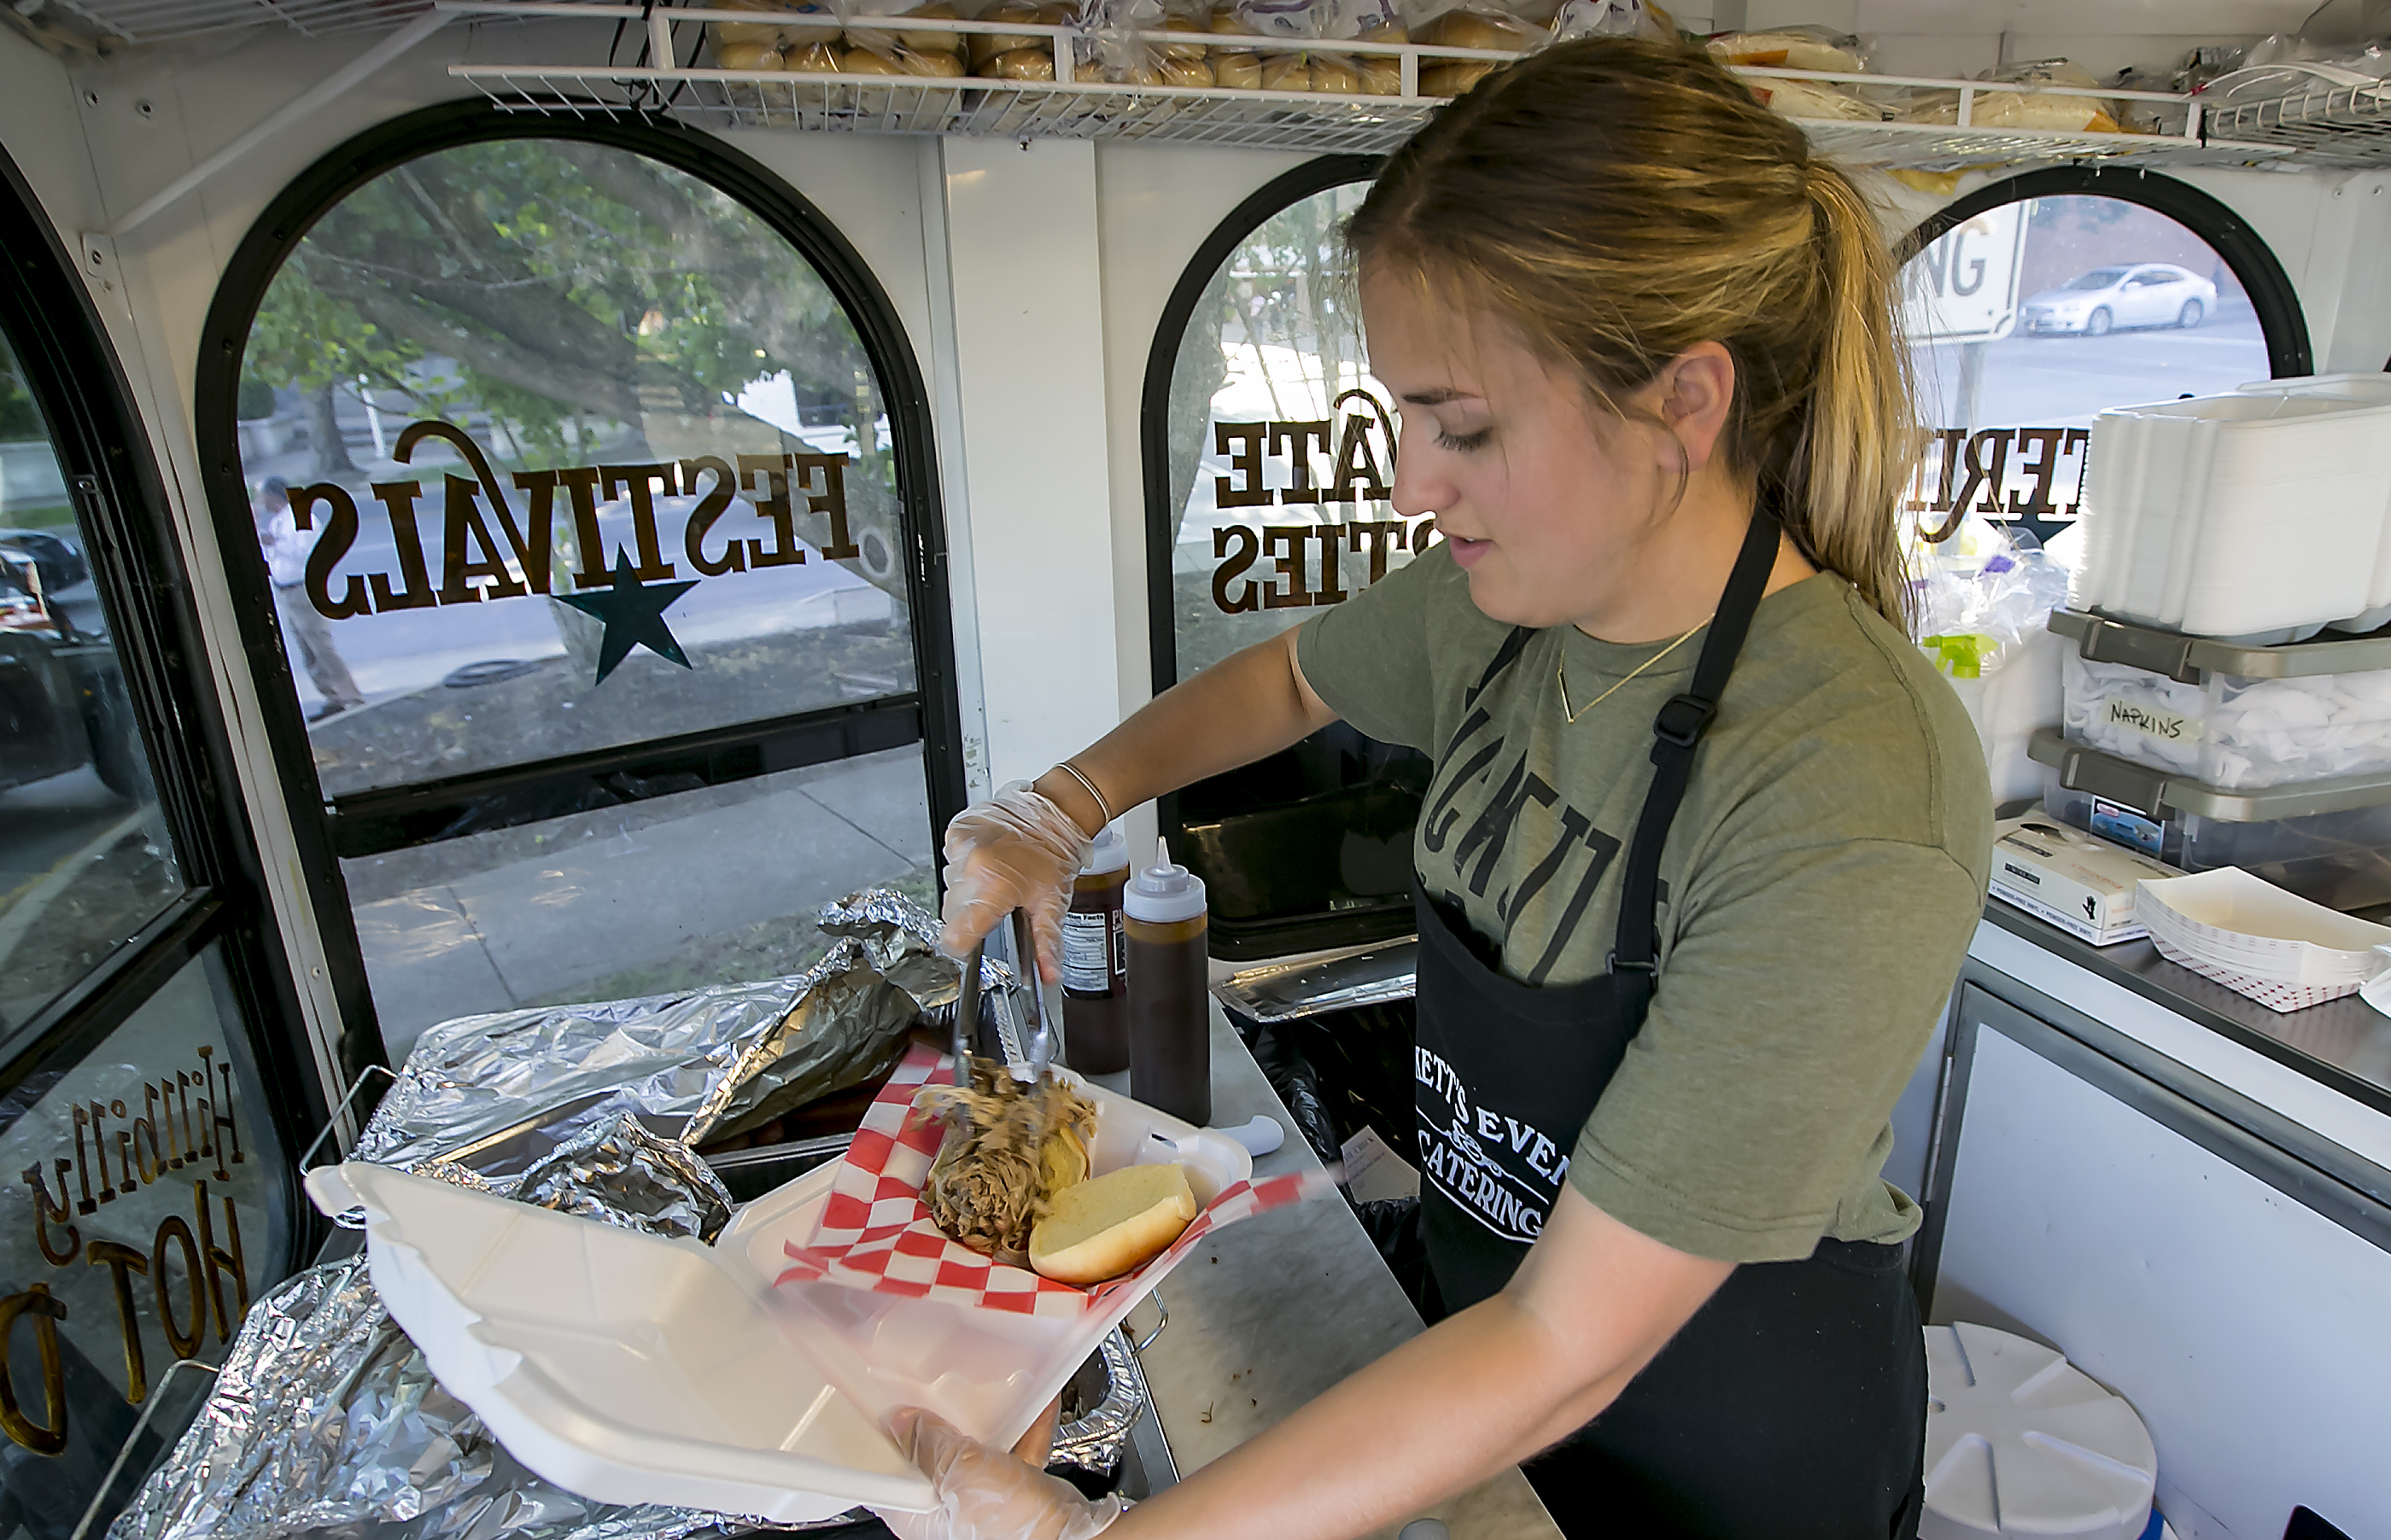 More Food Truck Considerations in Murfreesboro